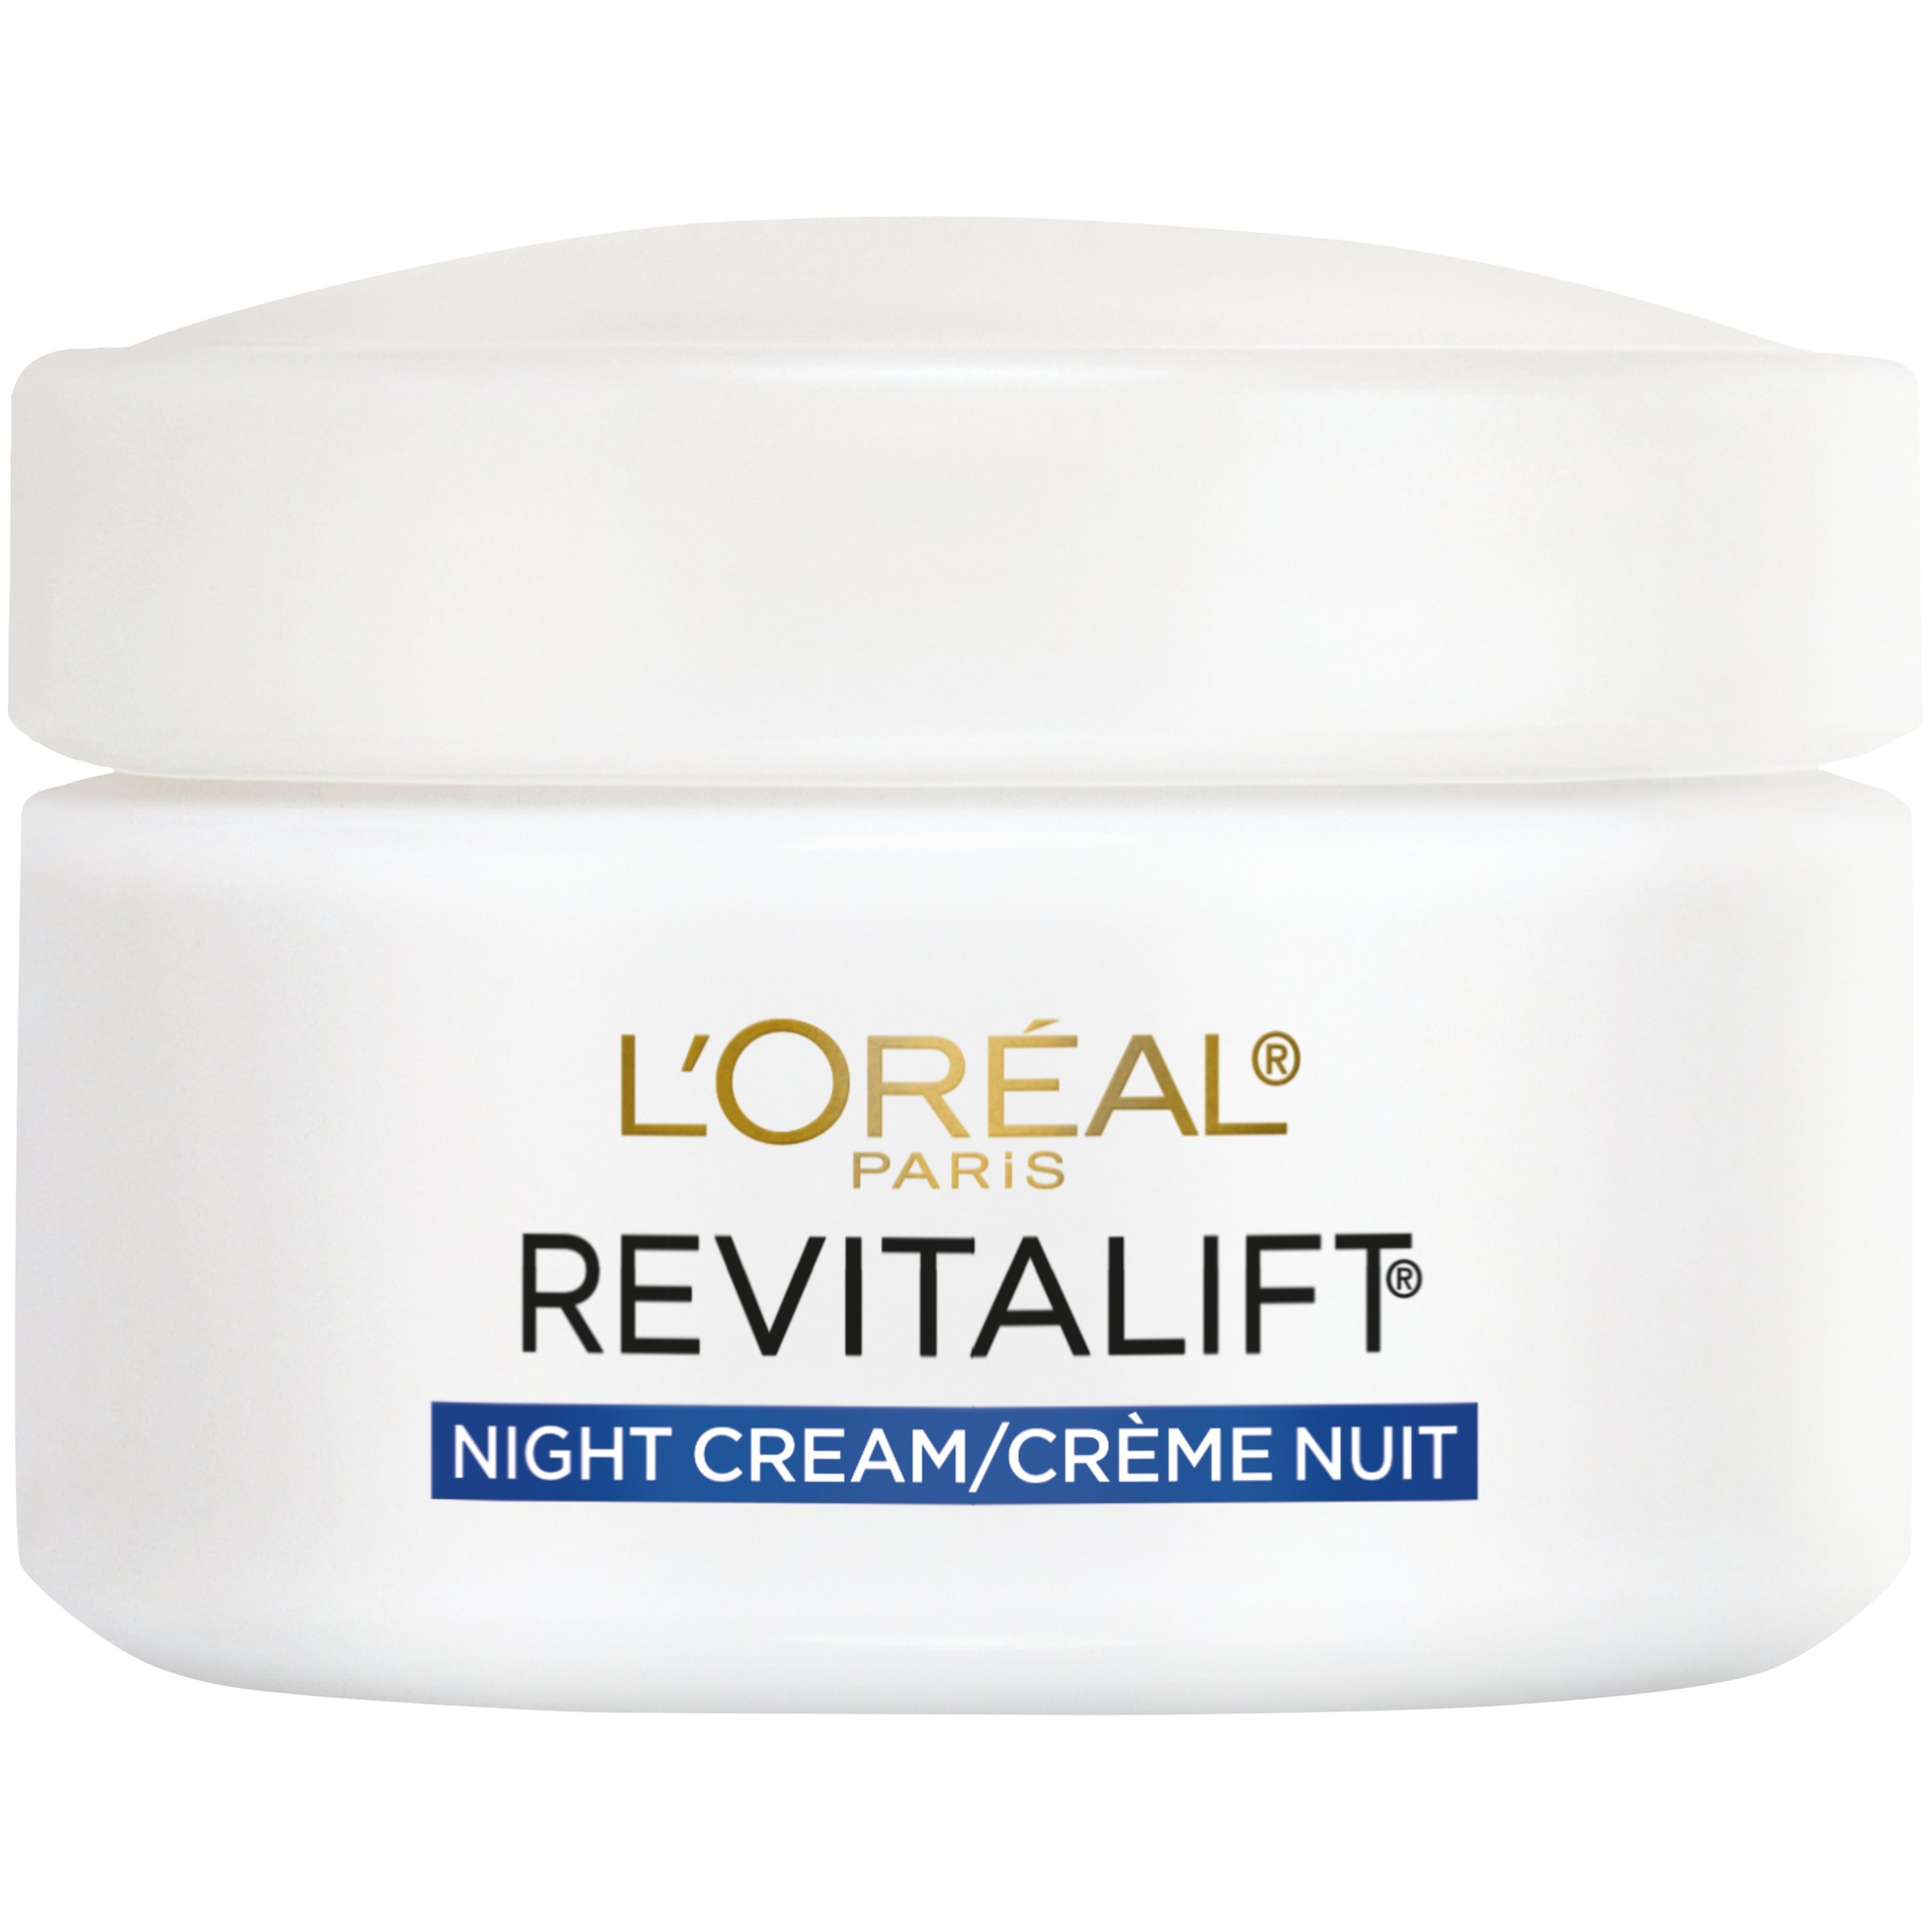 L'Oreal Paris, RevitaLift Anti-Wrinkle + Firming Night Cream Moisturizer 1.7 oz by L'Oreal Paris